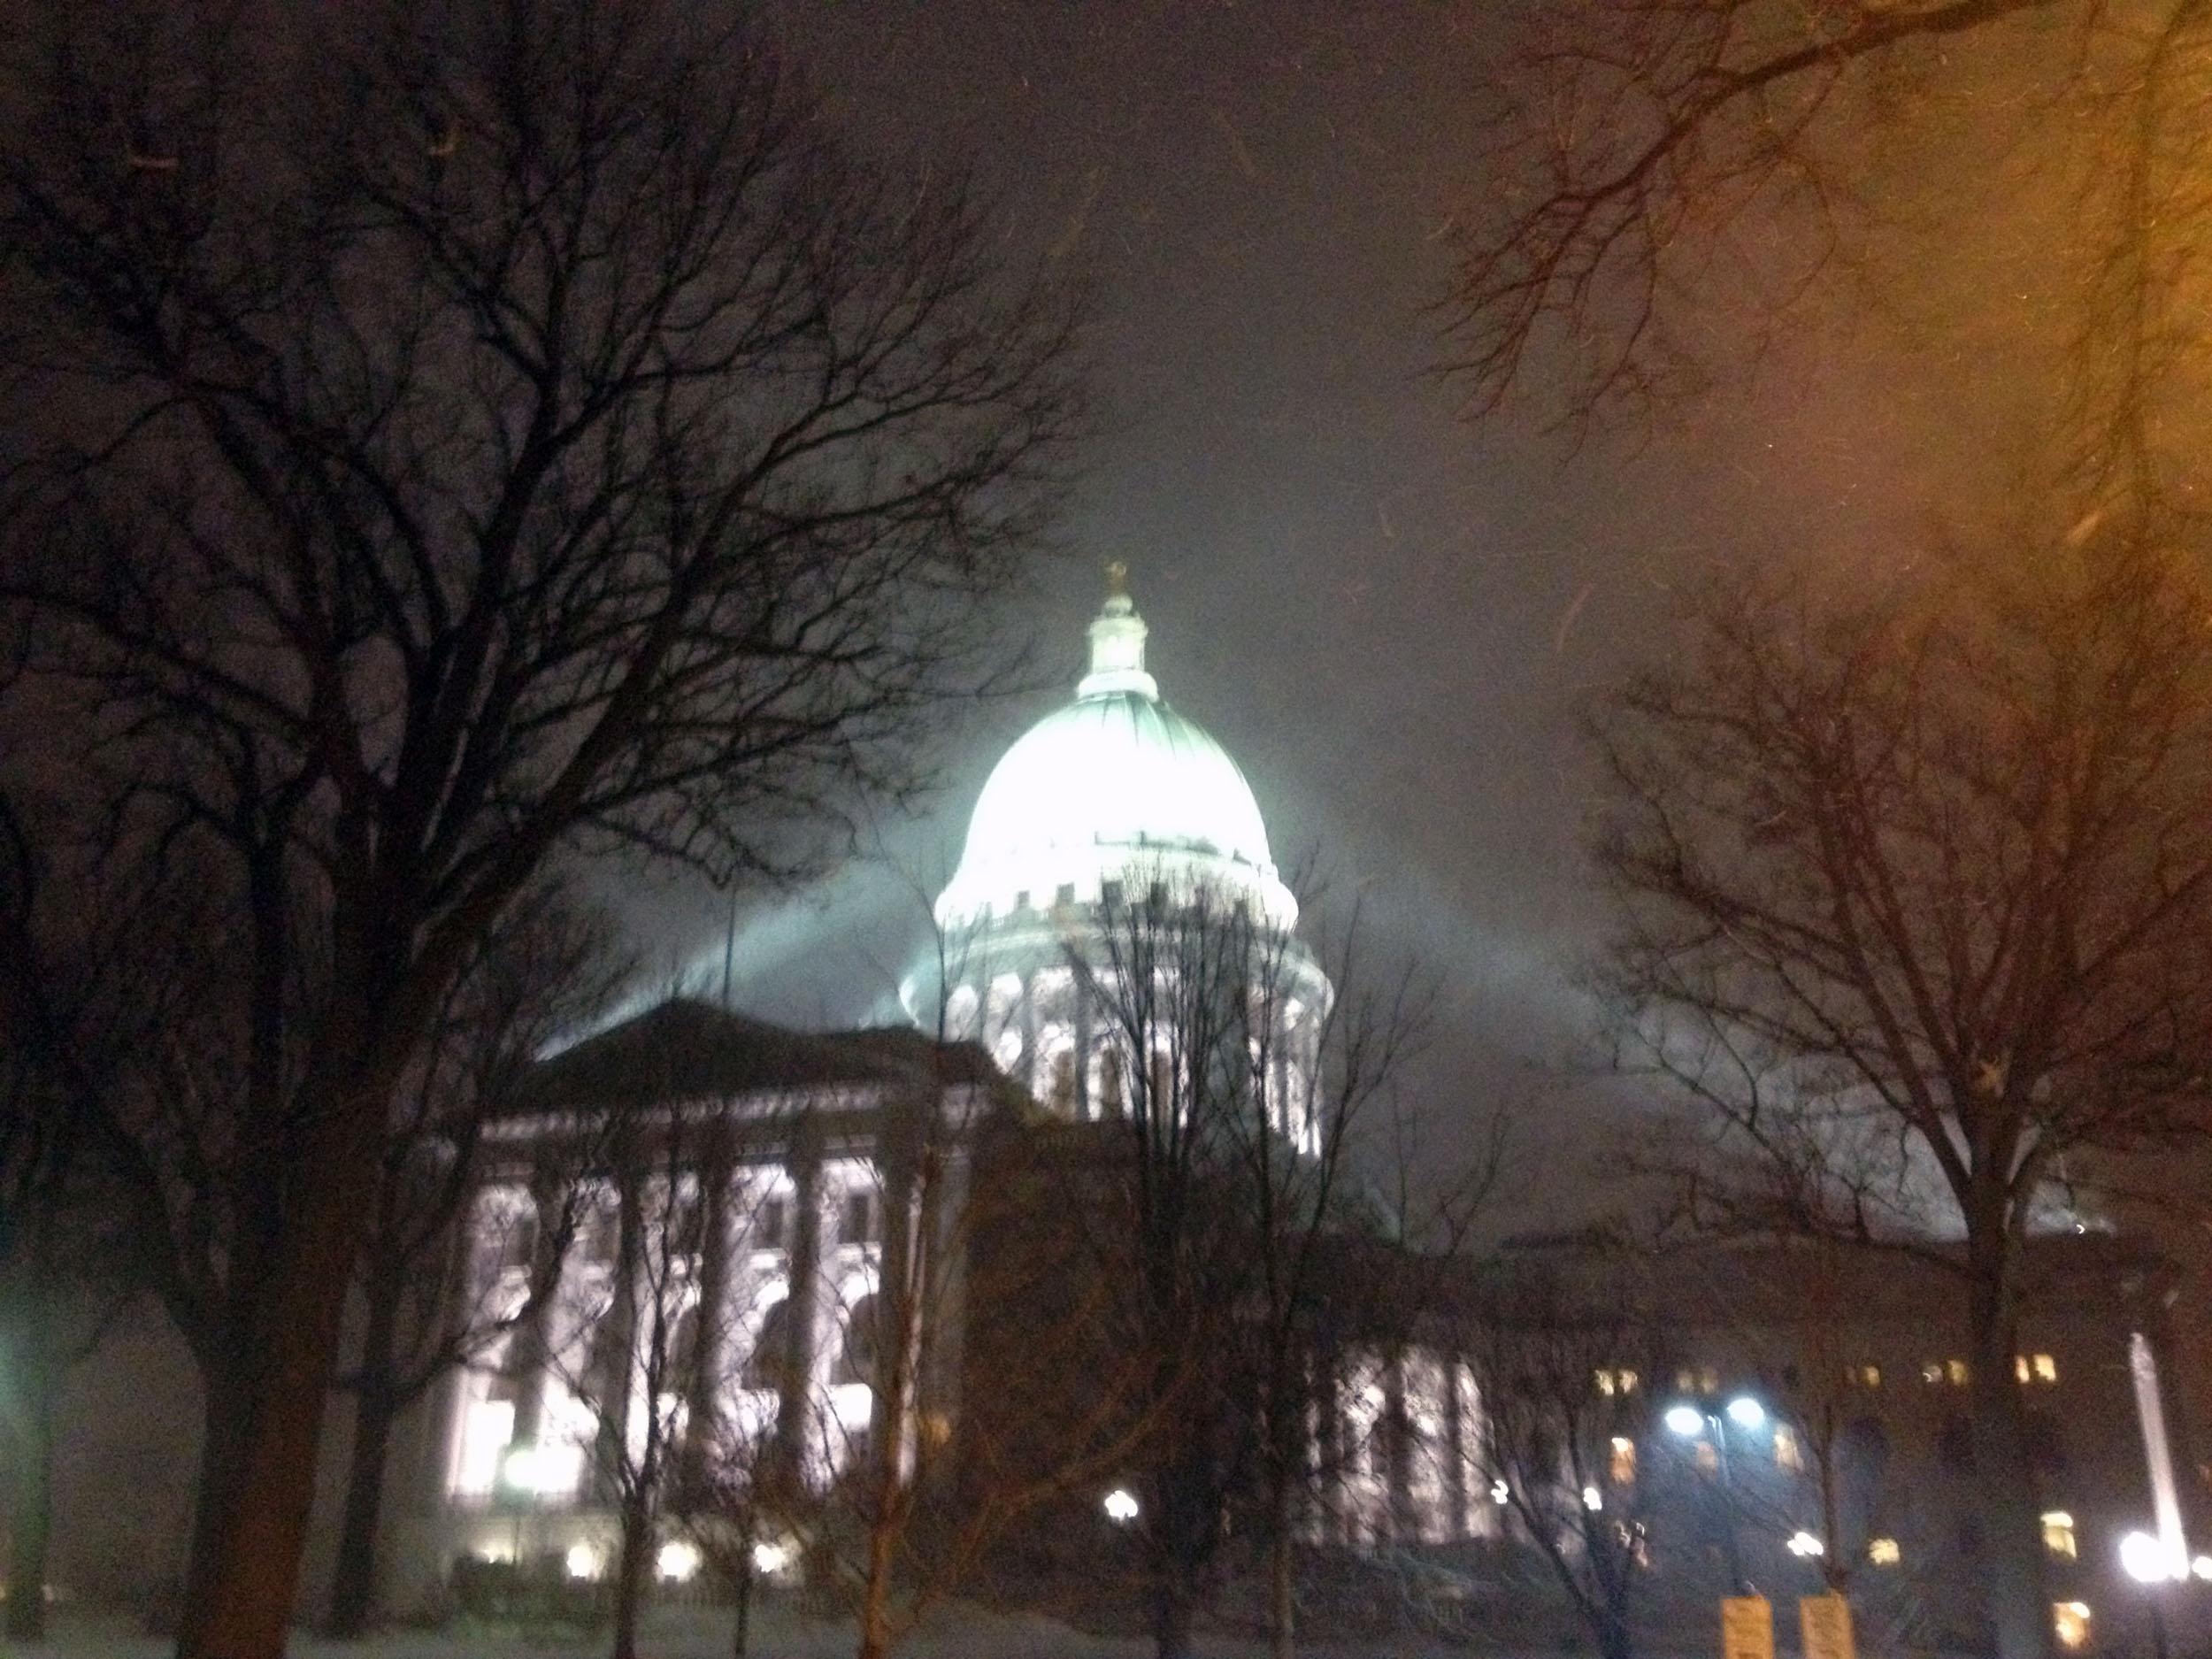 Snowstorm on the Capitol